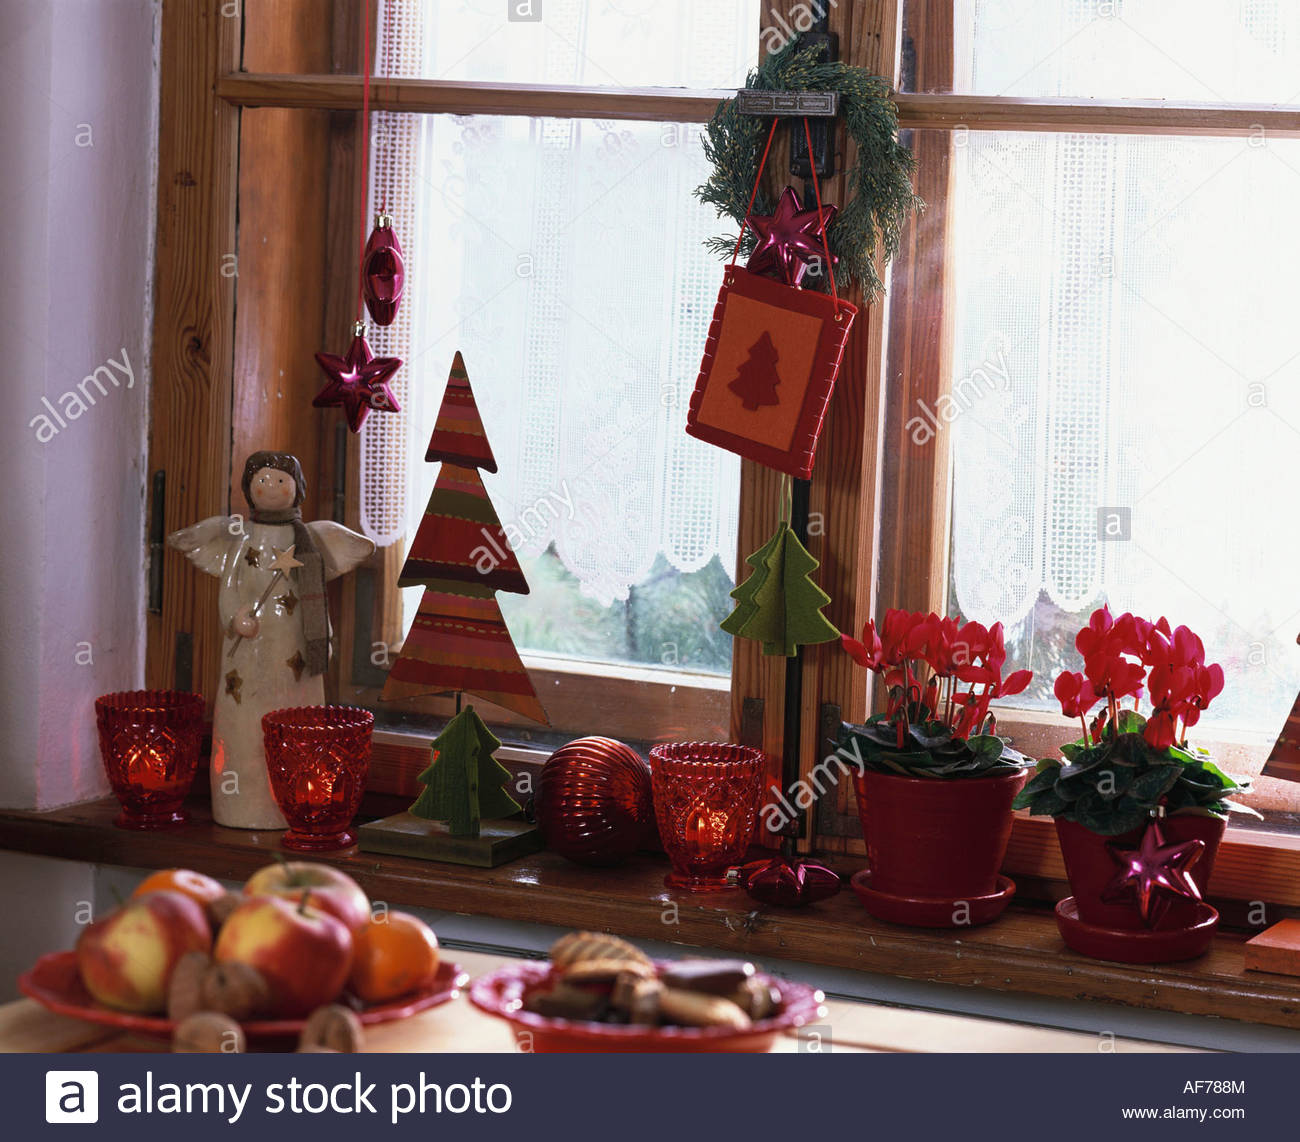 cyclamen on window sill with christmas decorations stock image - Window Sill Christmas Decorations